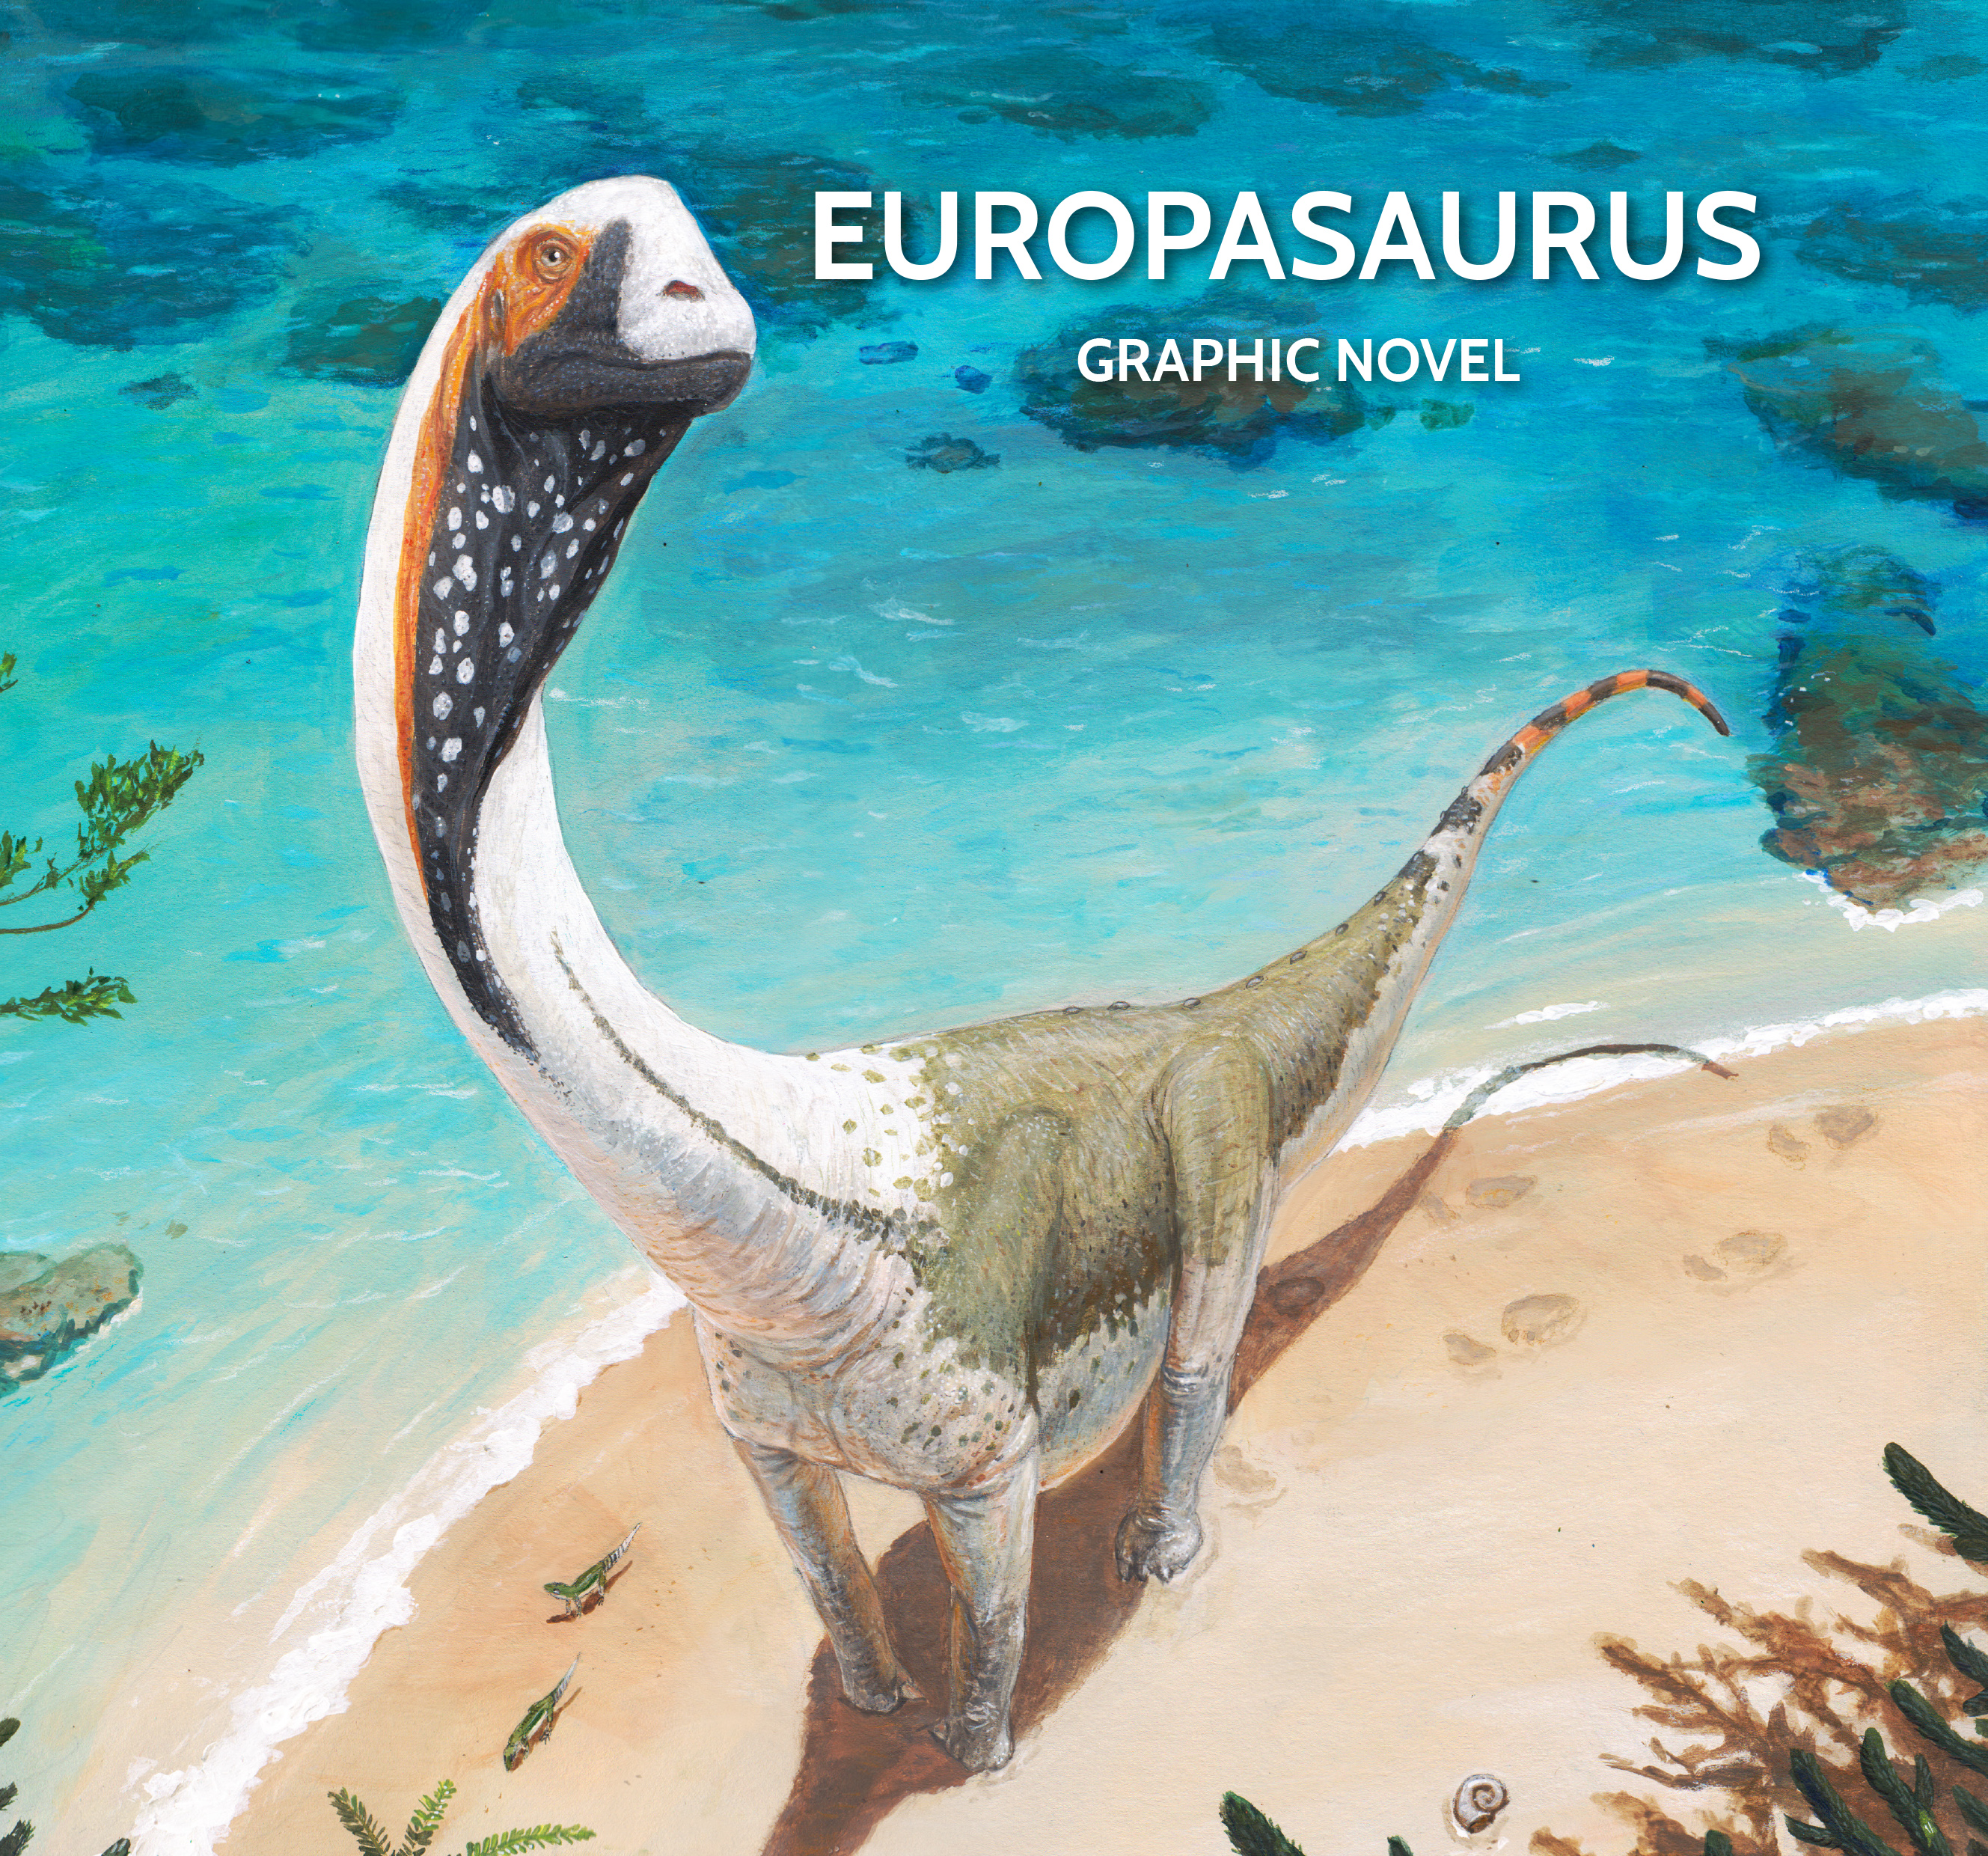 Europasaurus Illustration